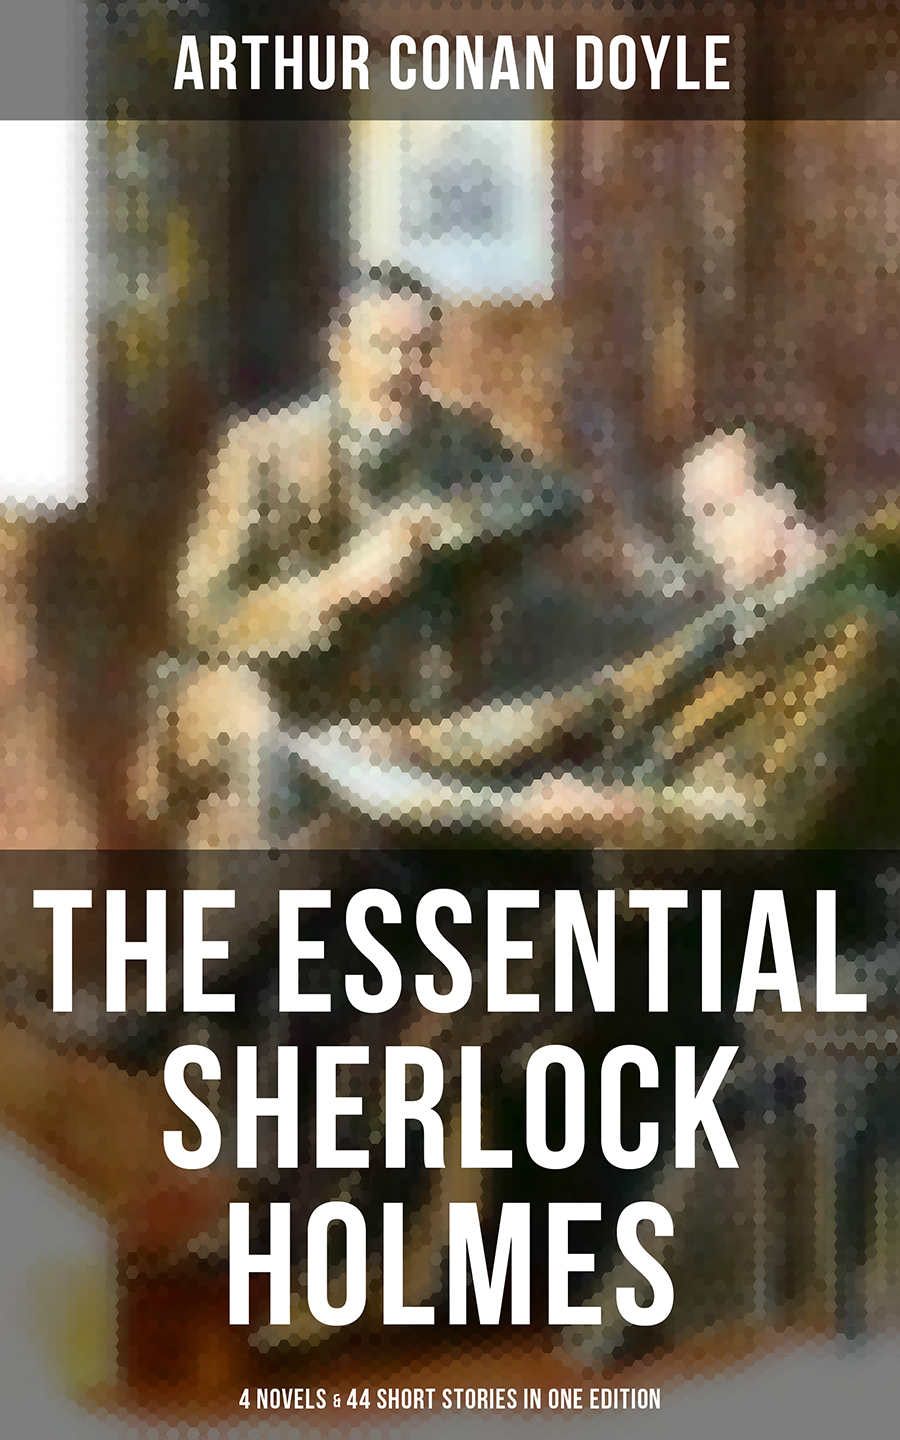 Arthur Conan Doyle The Essential Sherlock Holmes: 4 Novels & 44 Short Stories in One Edition murphy raymond essential grammar in use 4 edition without answers